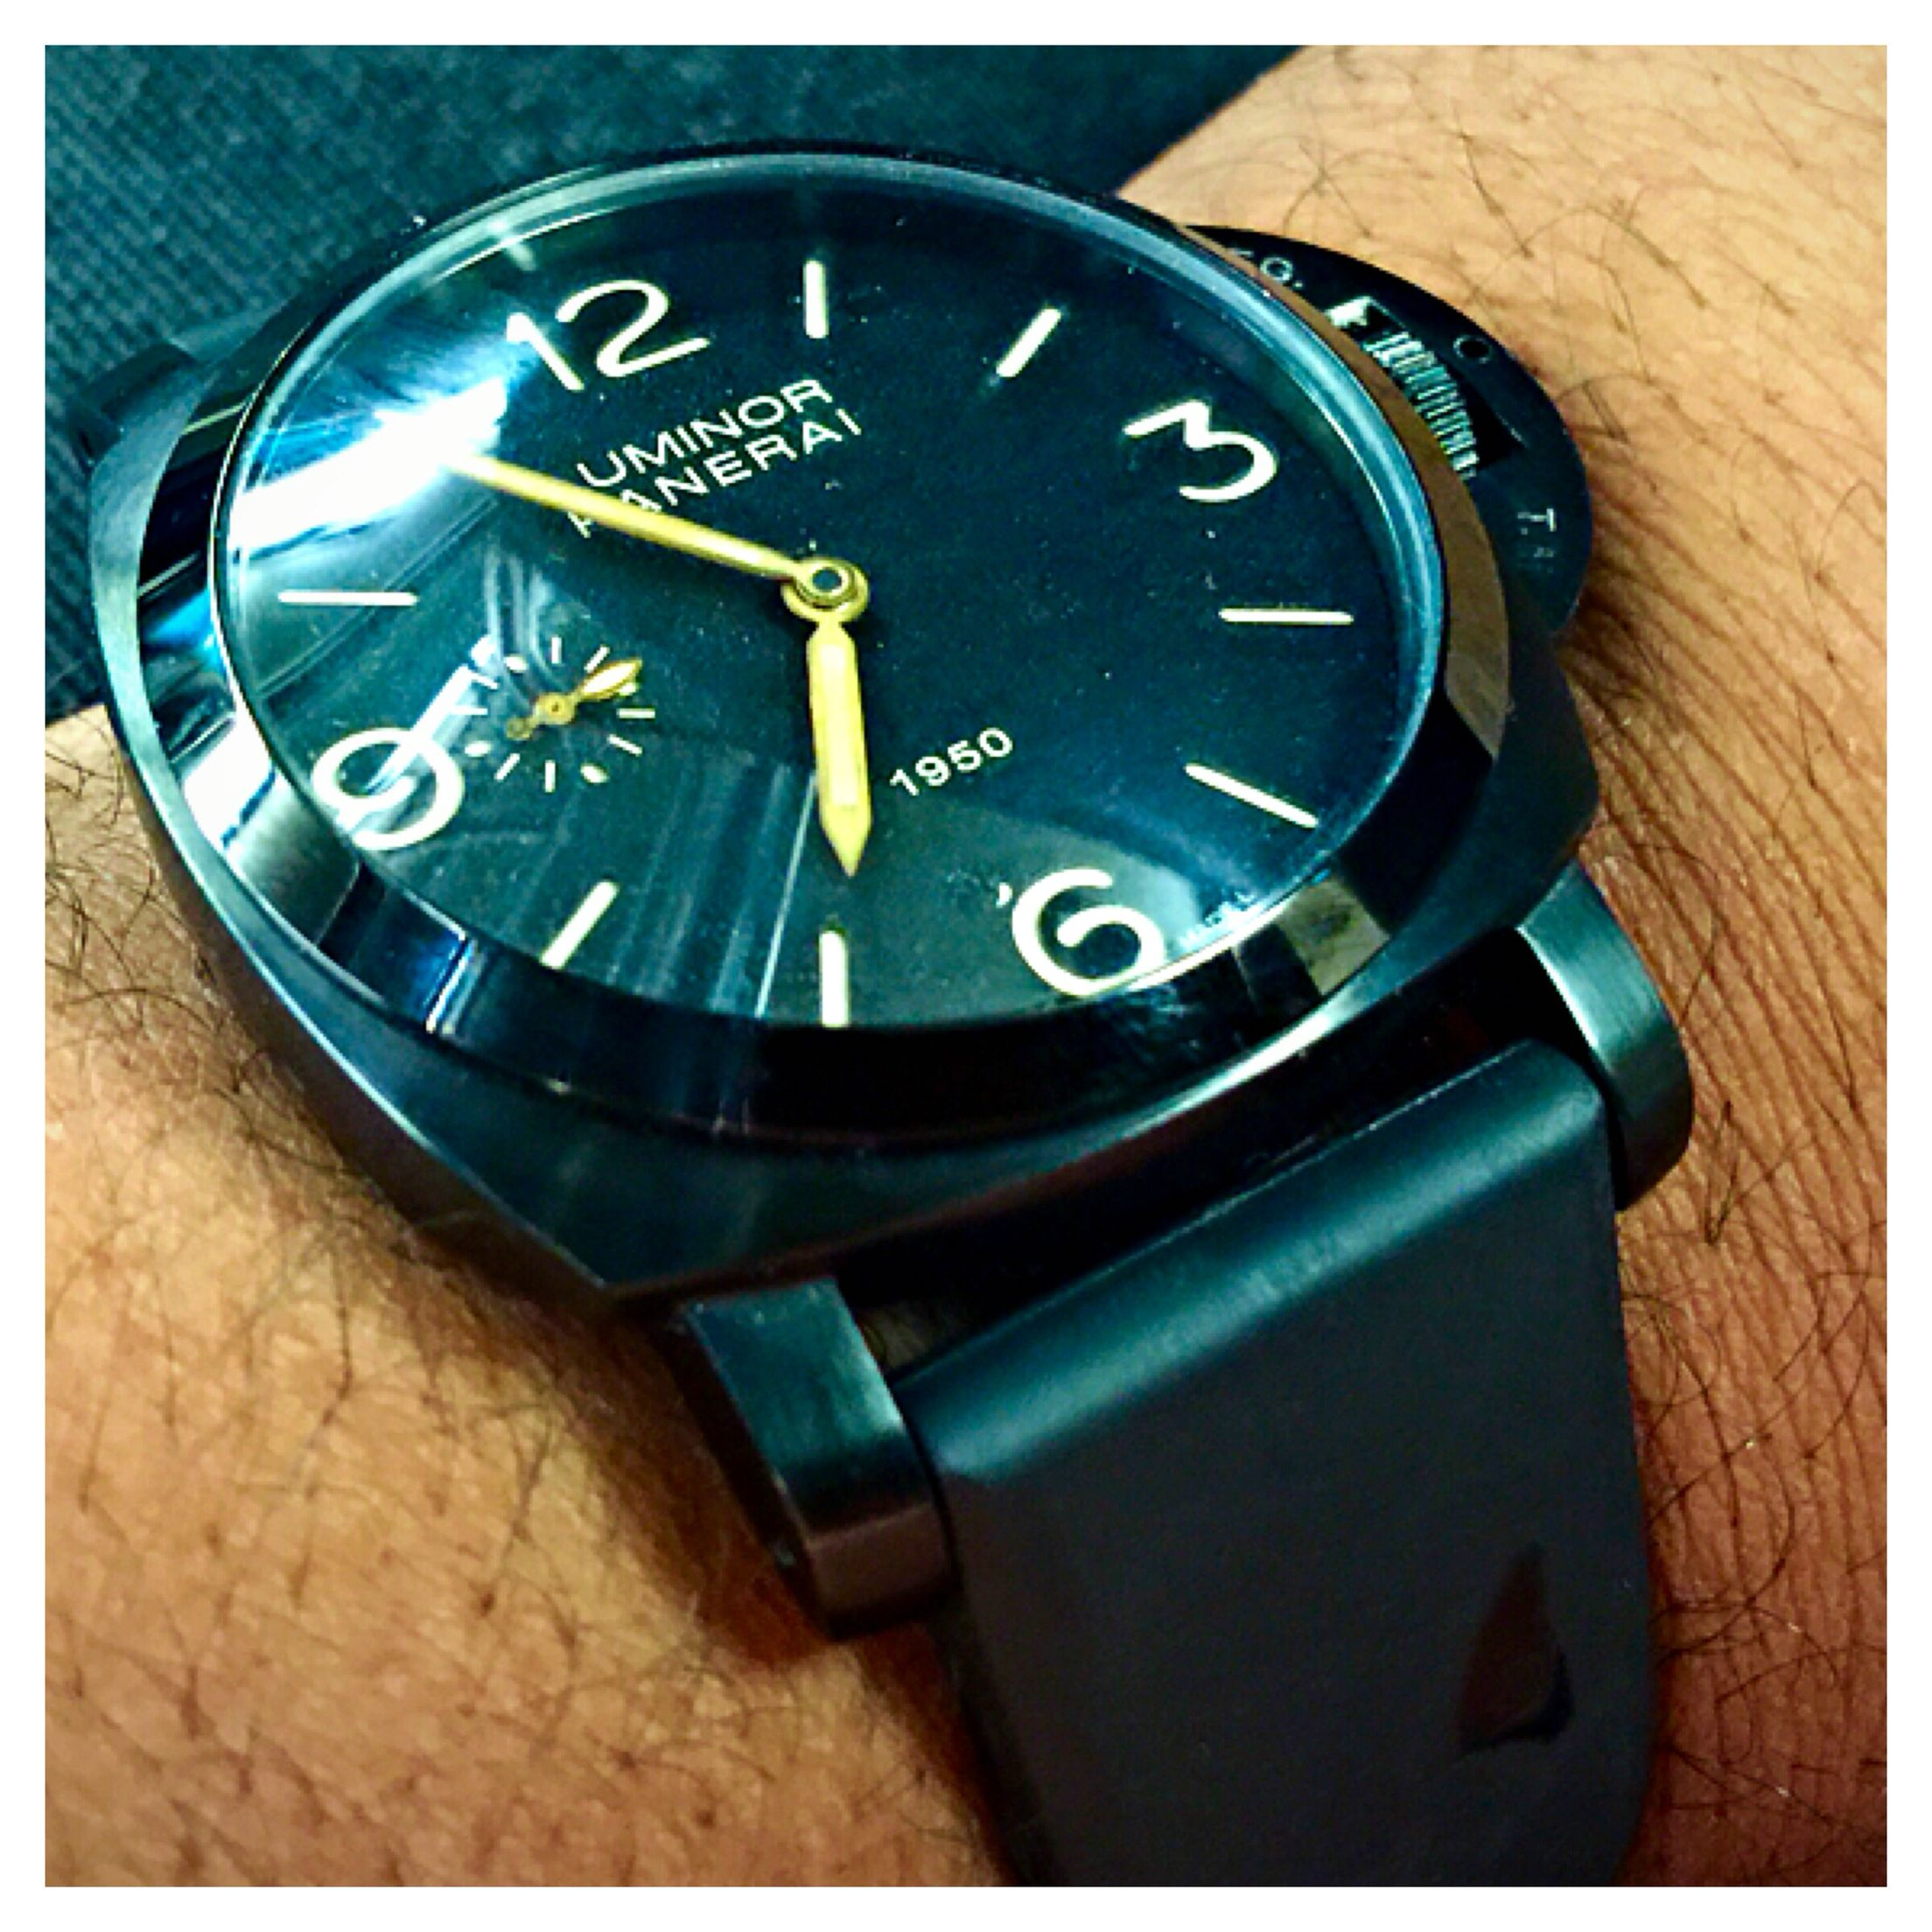 Pin by Ron Thompson on Vintage & Homage Panerai watches